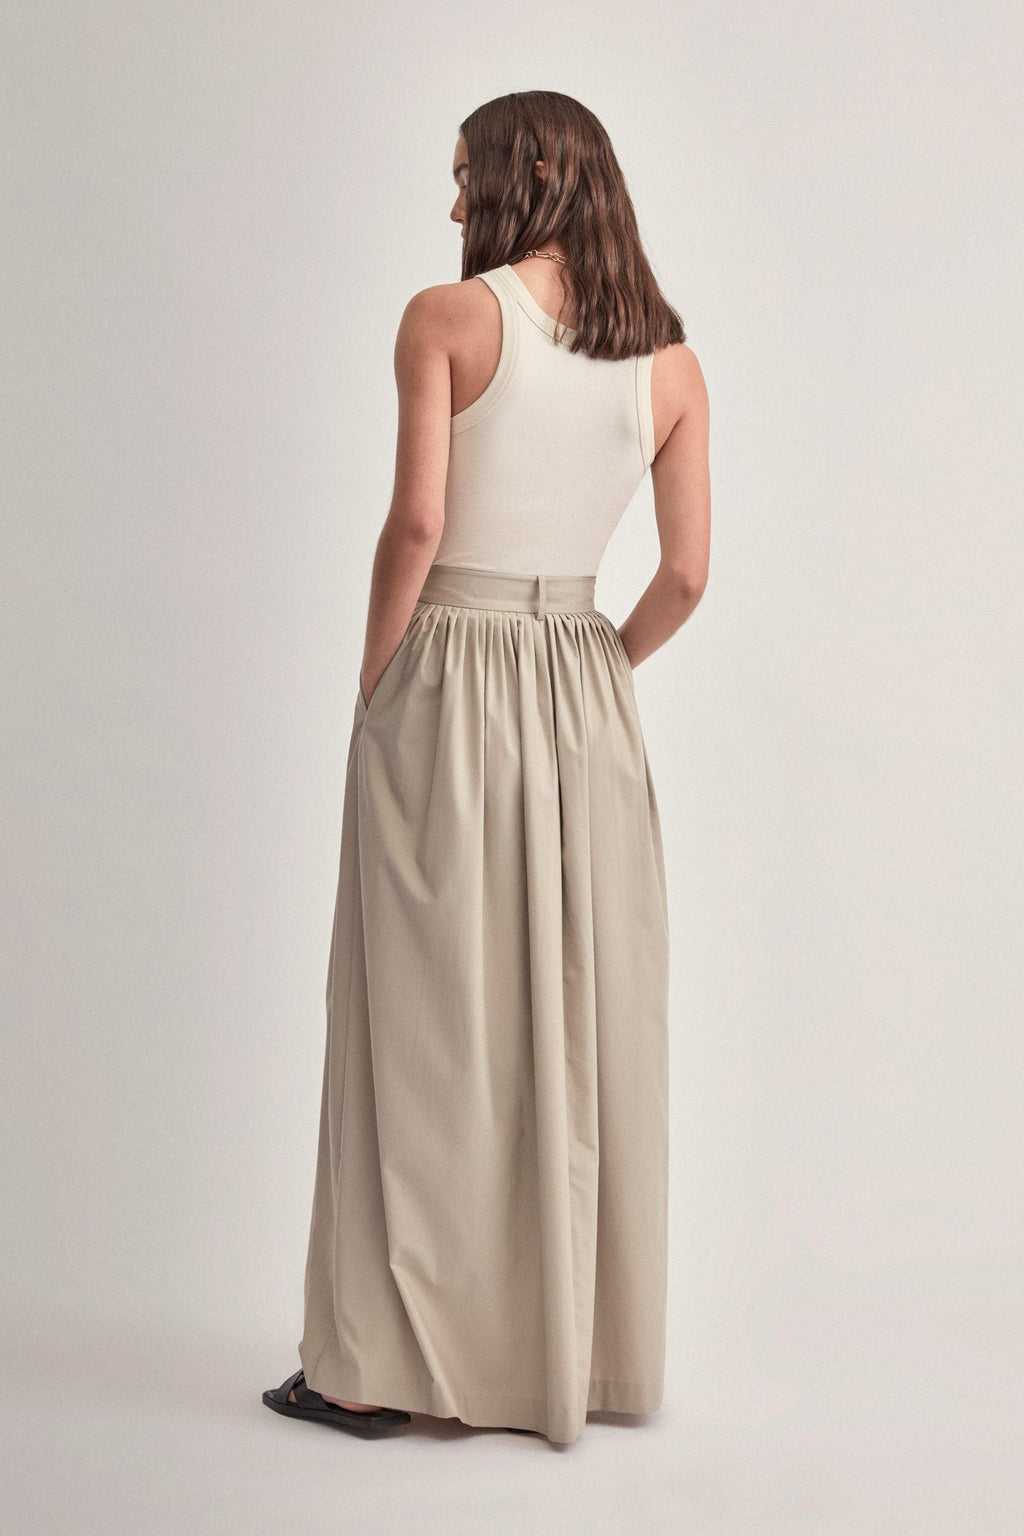 Camilla And Marc / Frost Pleat Maxi Skirt / Oyster